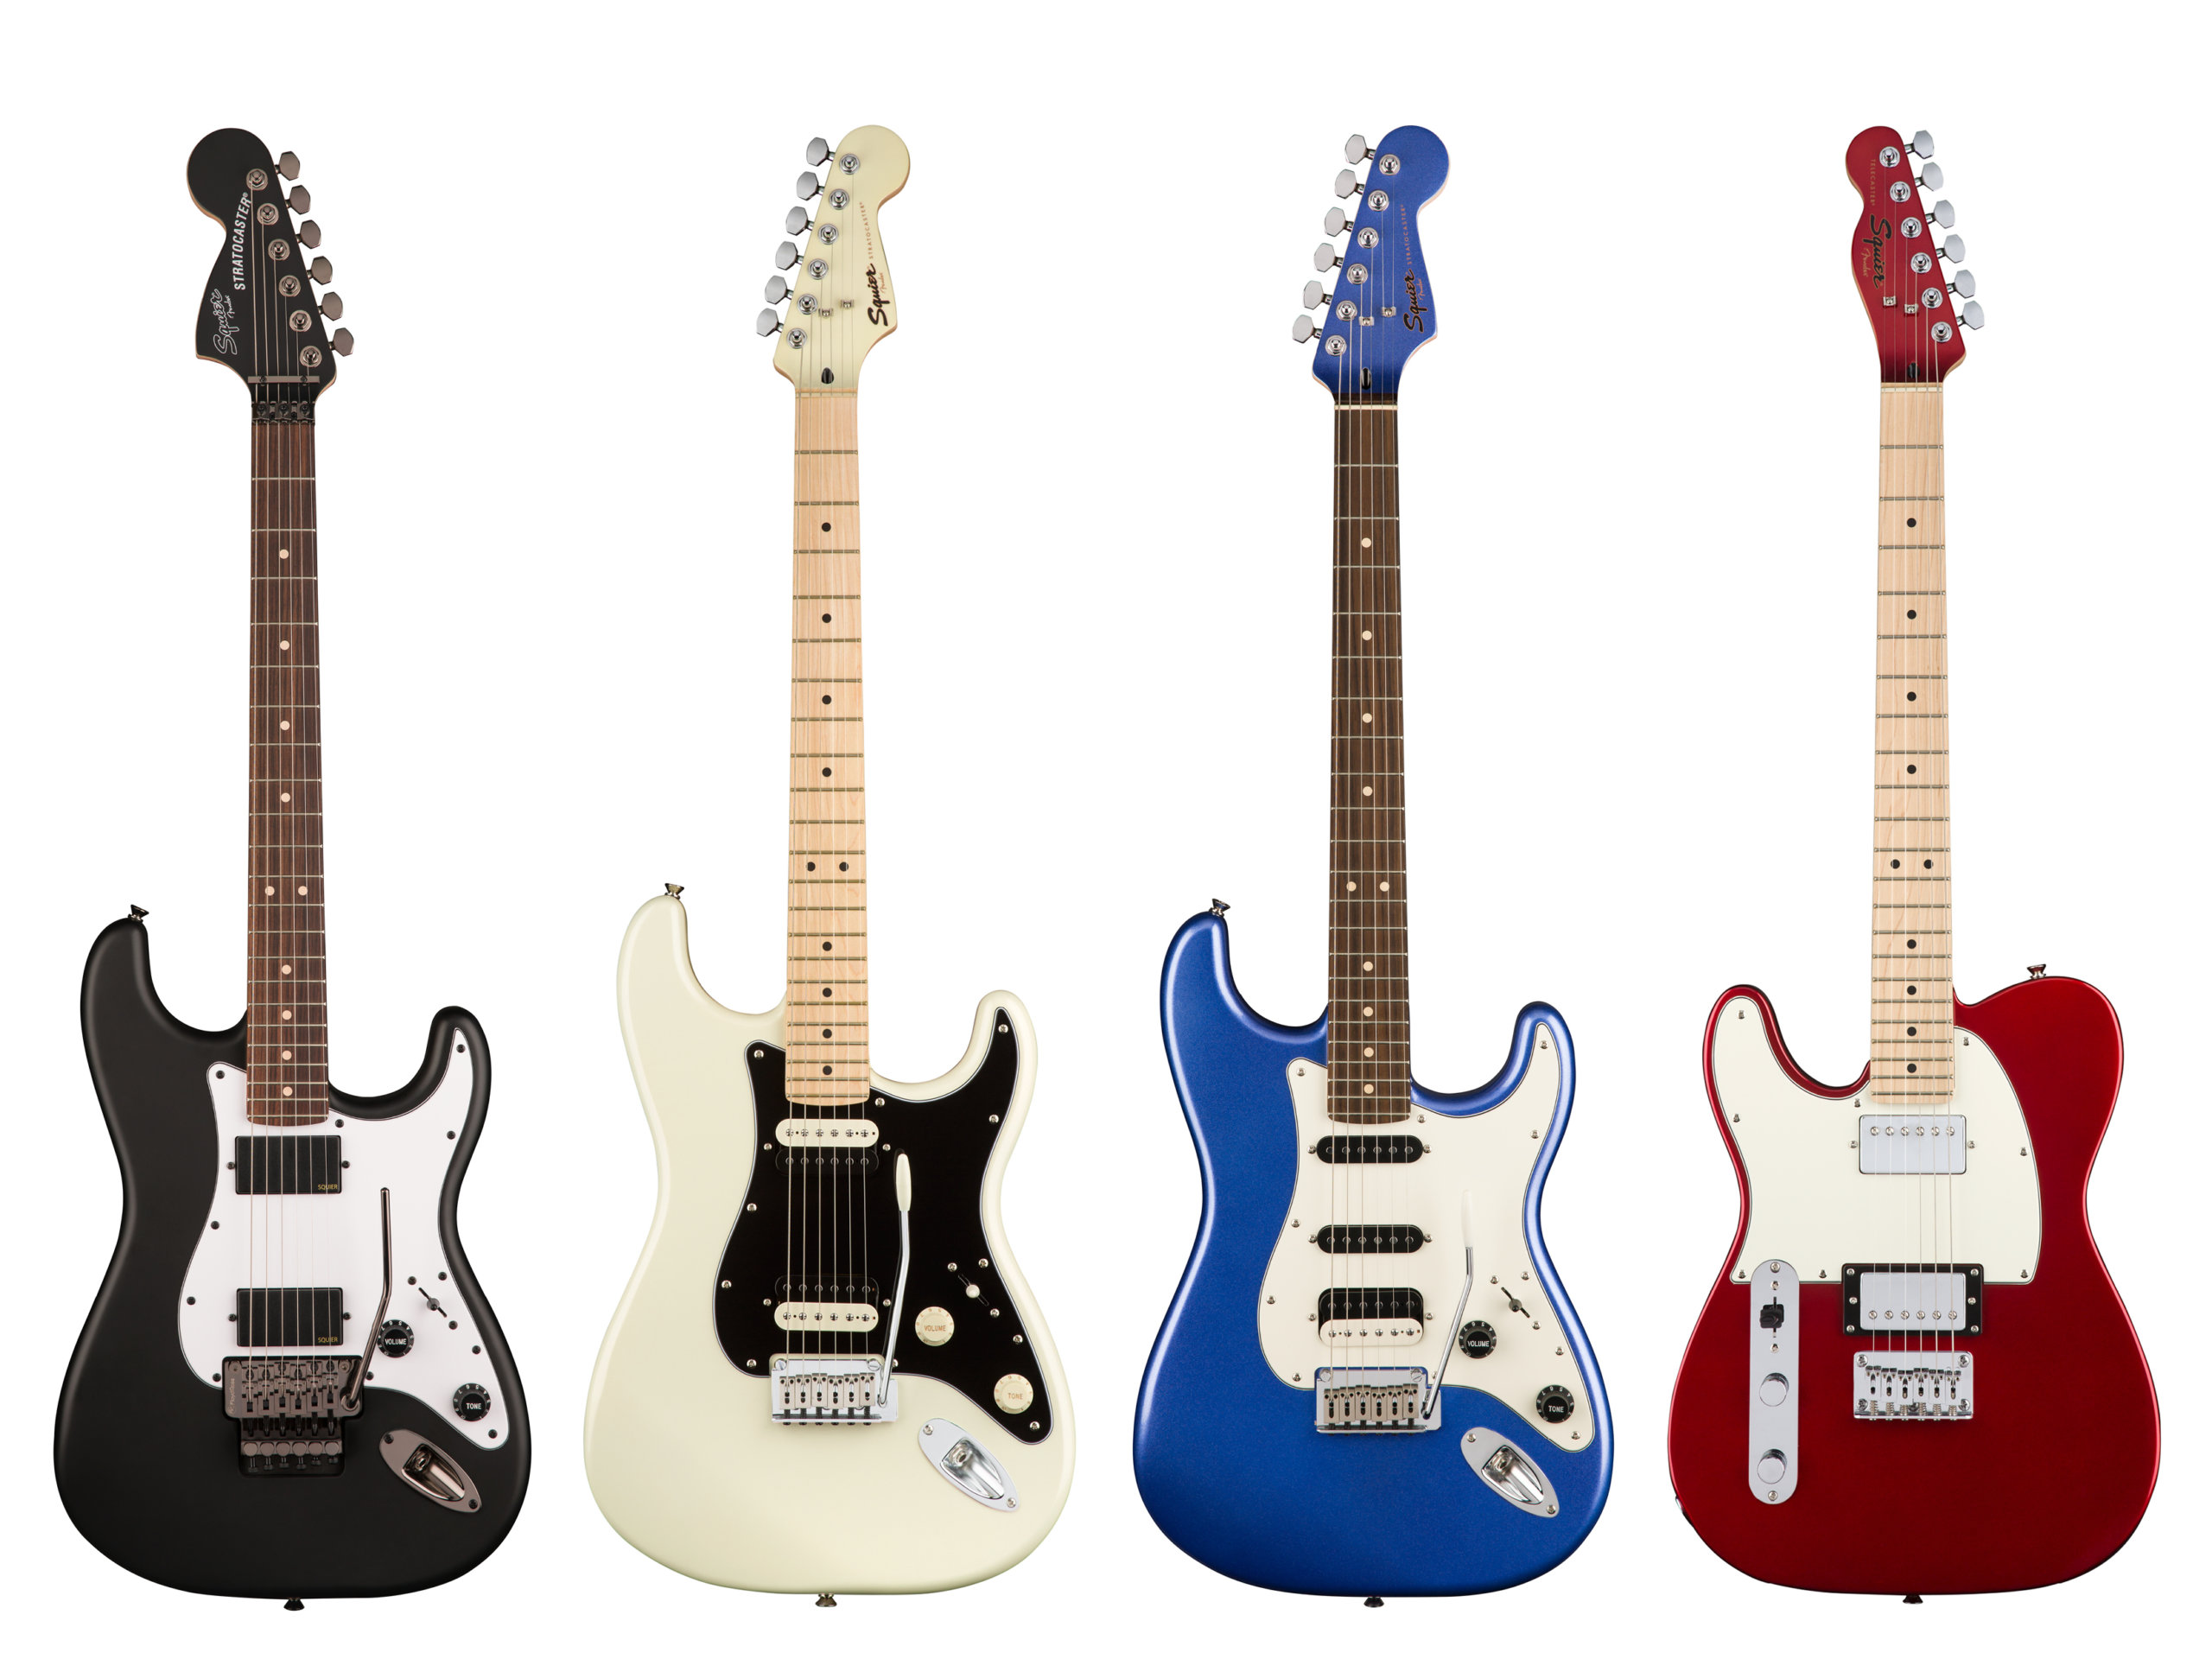 Squier dives into 2018 with new guitar line-up